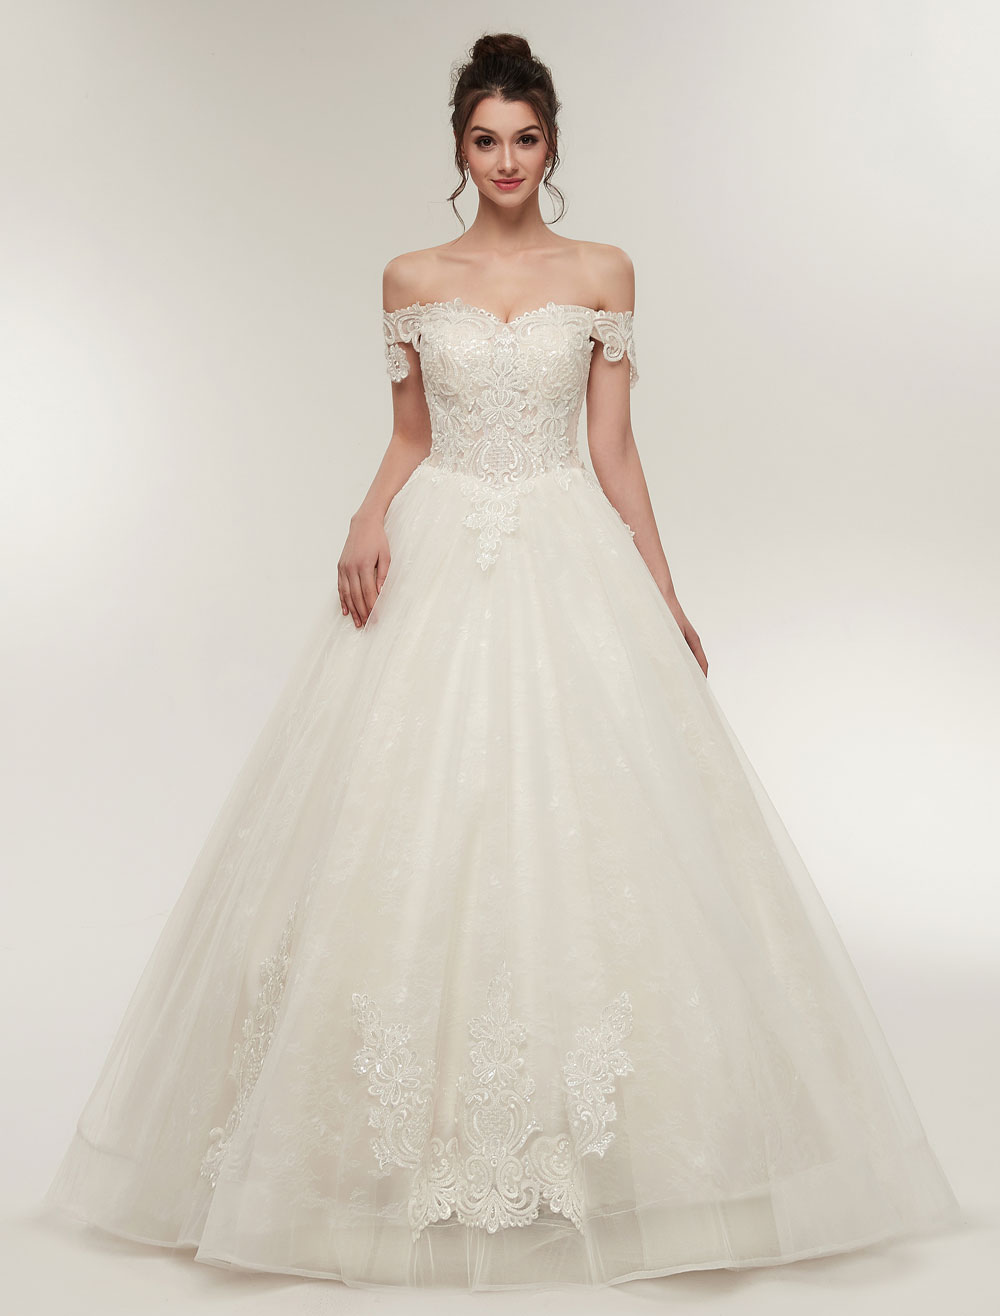 Princess Wedding Dresses Off The Shoulder Ivory Bridal Dresses Lace Applique Tulle Floor Length Ball Gowns